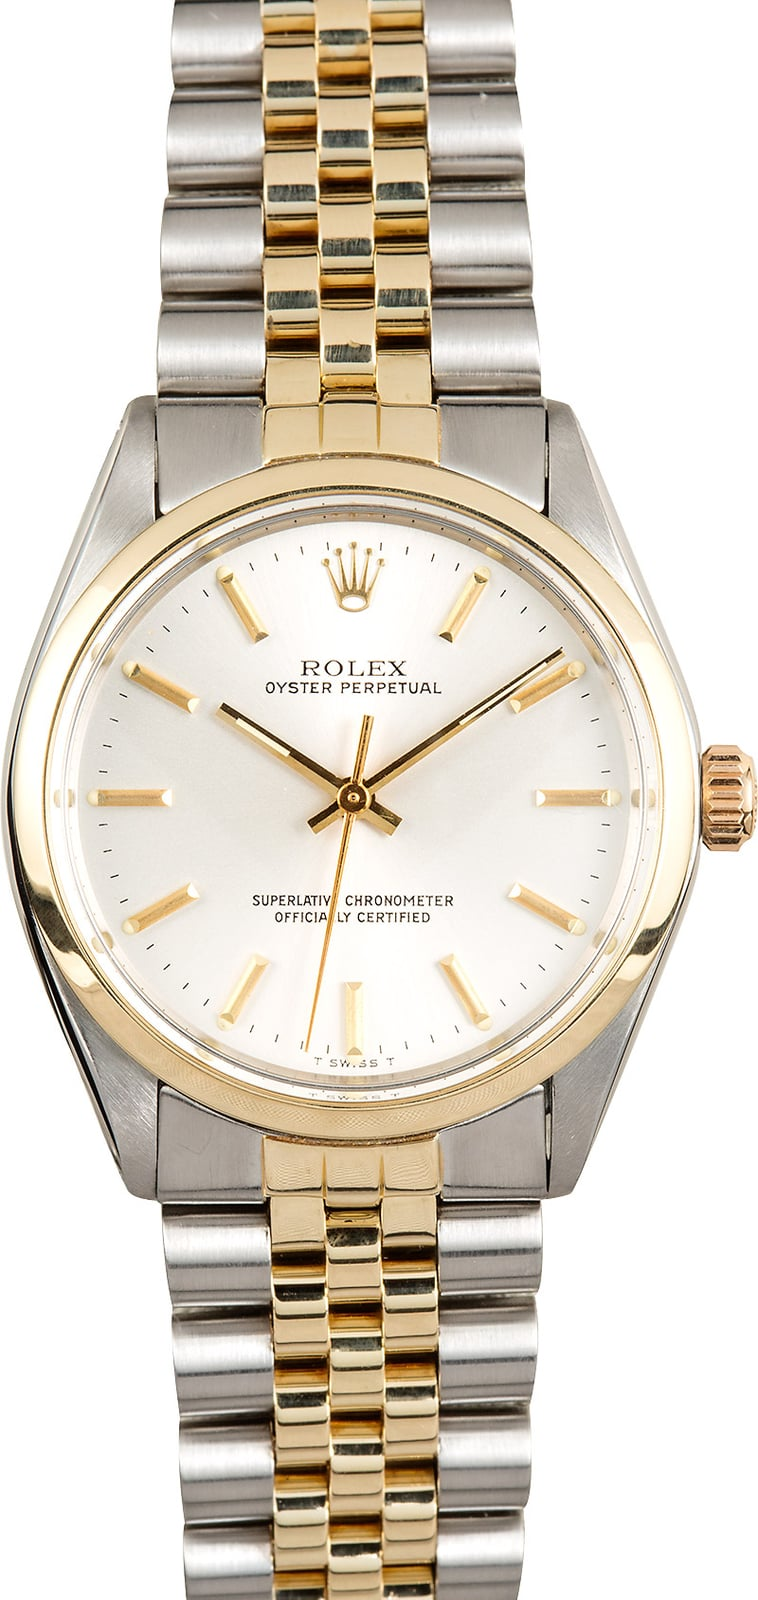 Vintage rolex oyster perpetual 1002 two tone jubilee for Vintage rolex oyster